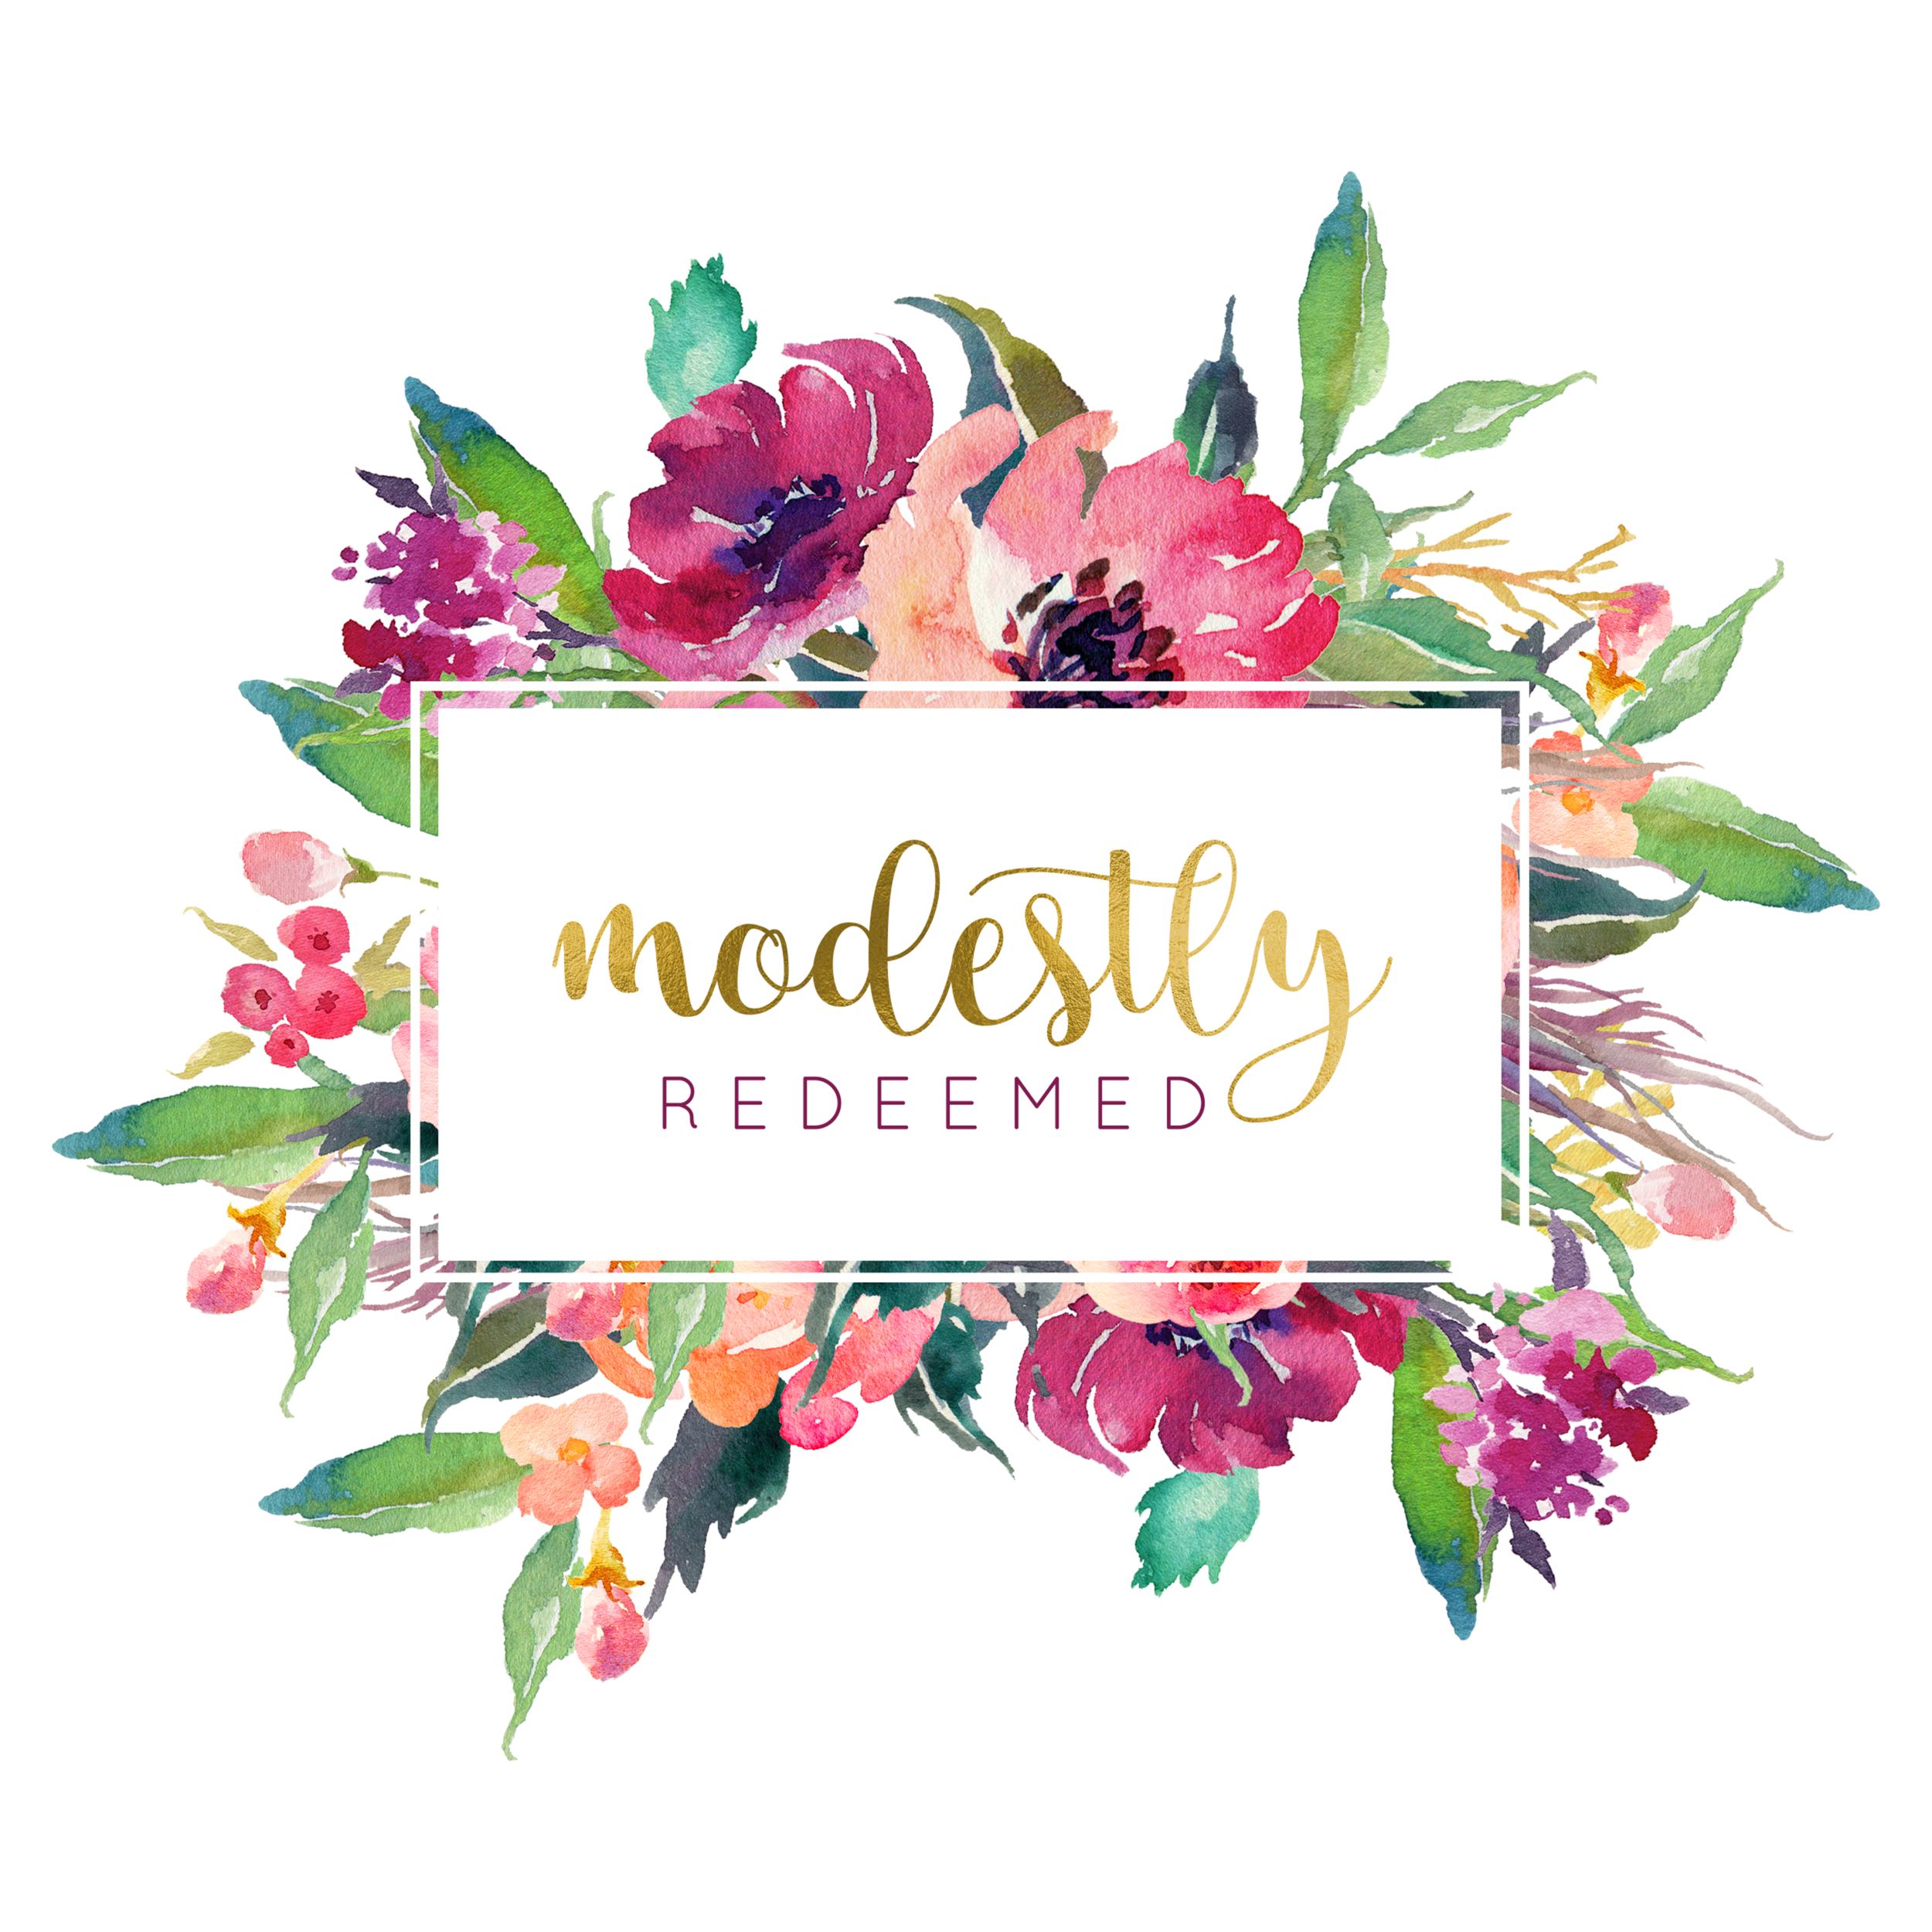 Welcome to our new boutique! We keep modesty in mind when creating one-of-a-kind, redeemed apparel. Want to learn more? Enjoy browsing here!